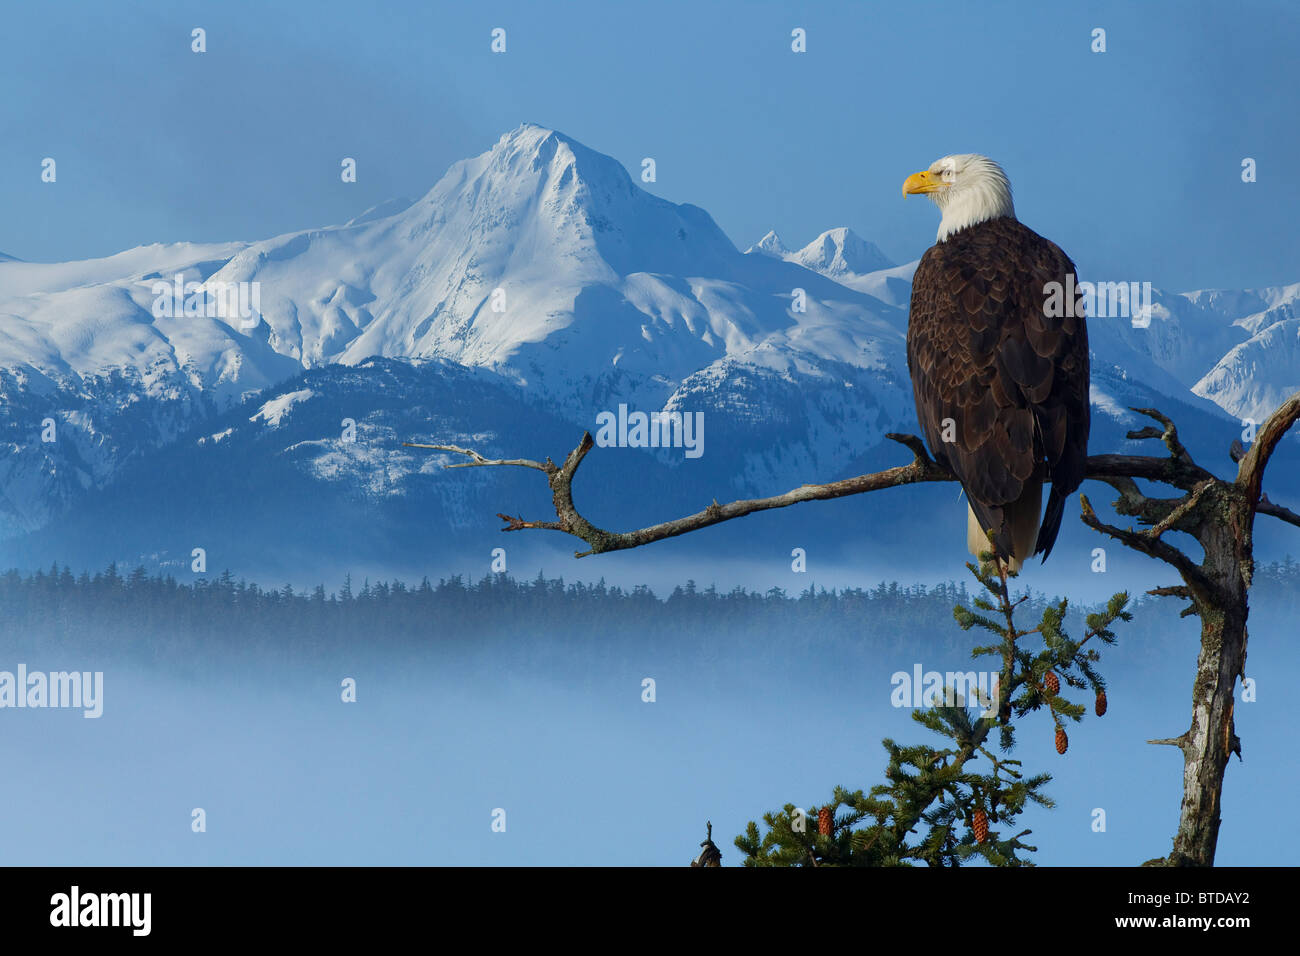 Bald Eagle perched on Spruce branch overlooking the Chilkat Mountains and fog filled Tongass National Forest, Alaska - Stock Image